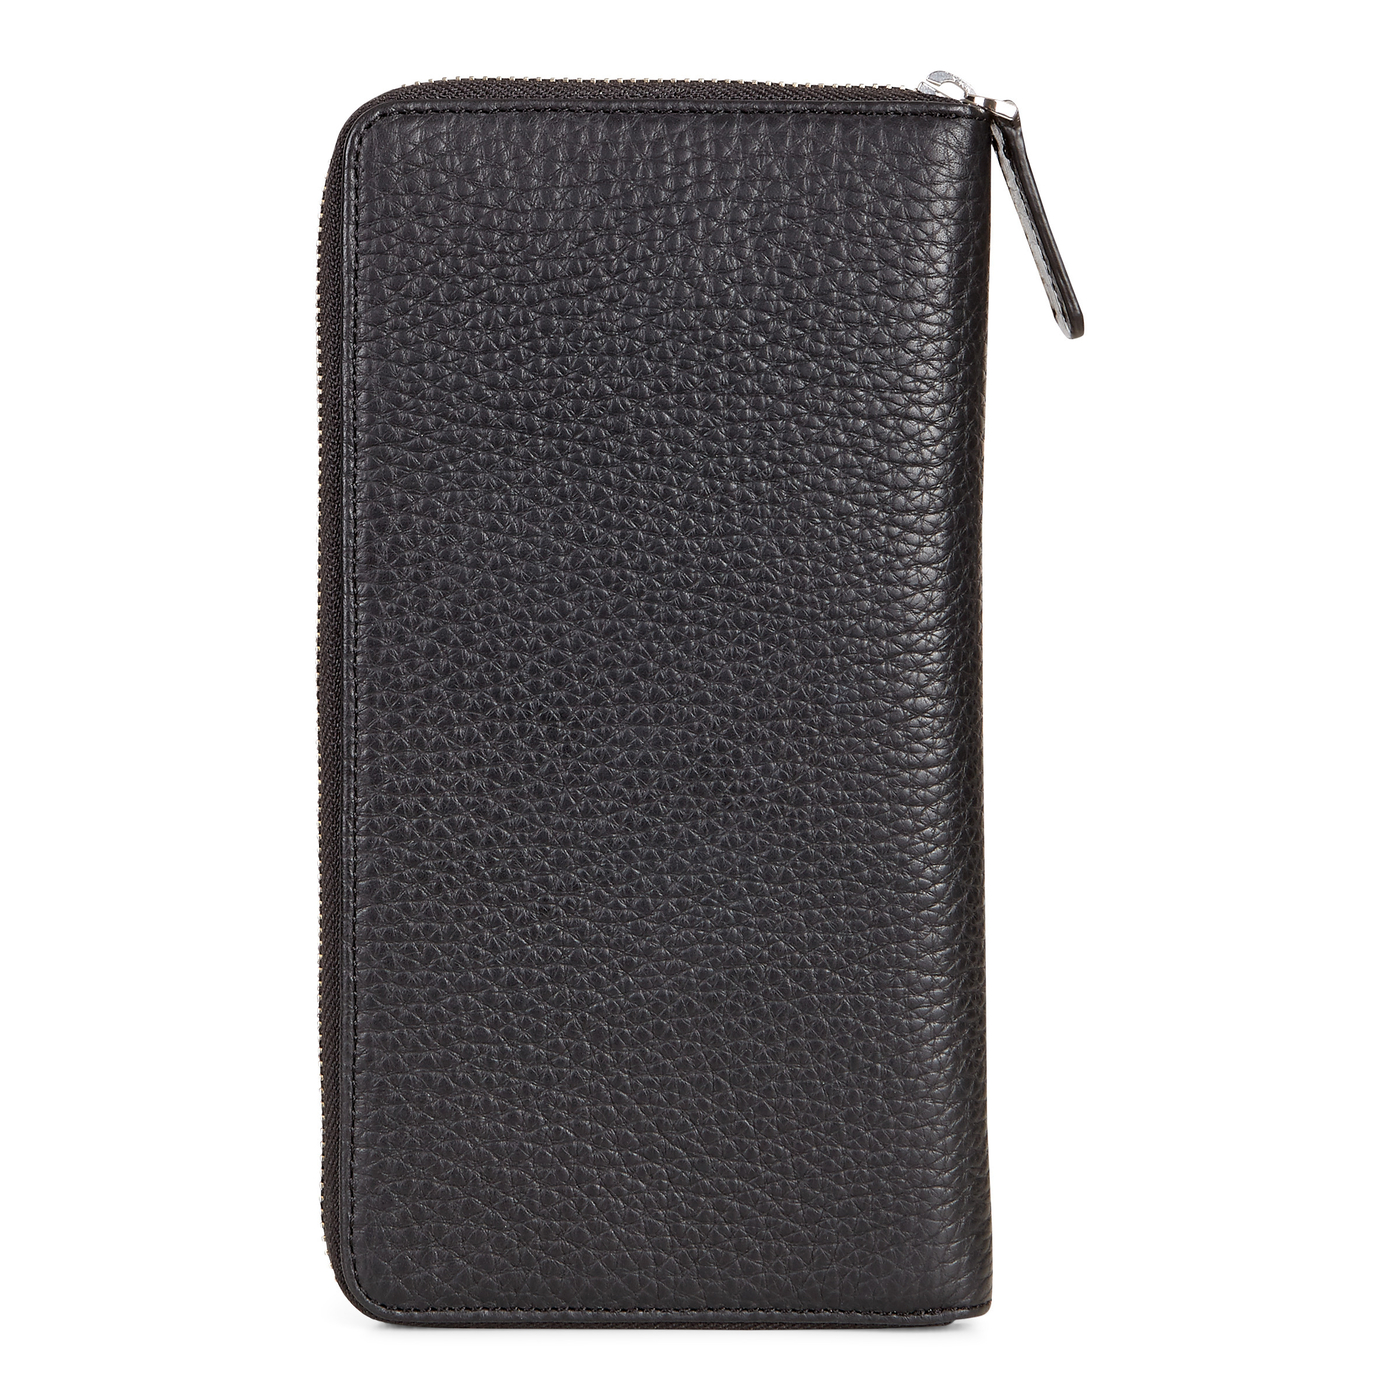 ECCO Arne RFID Travel Wallet